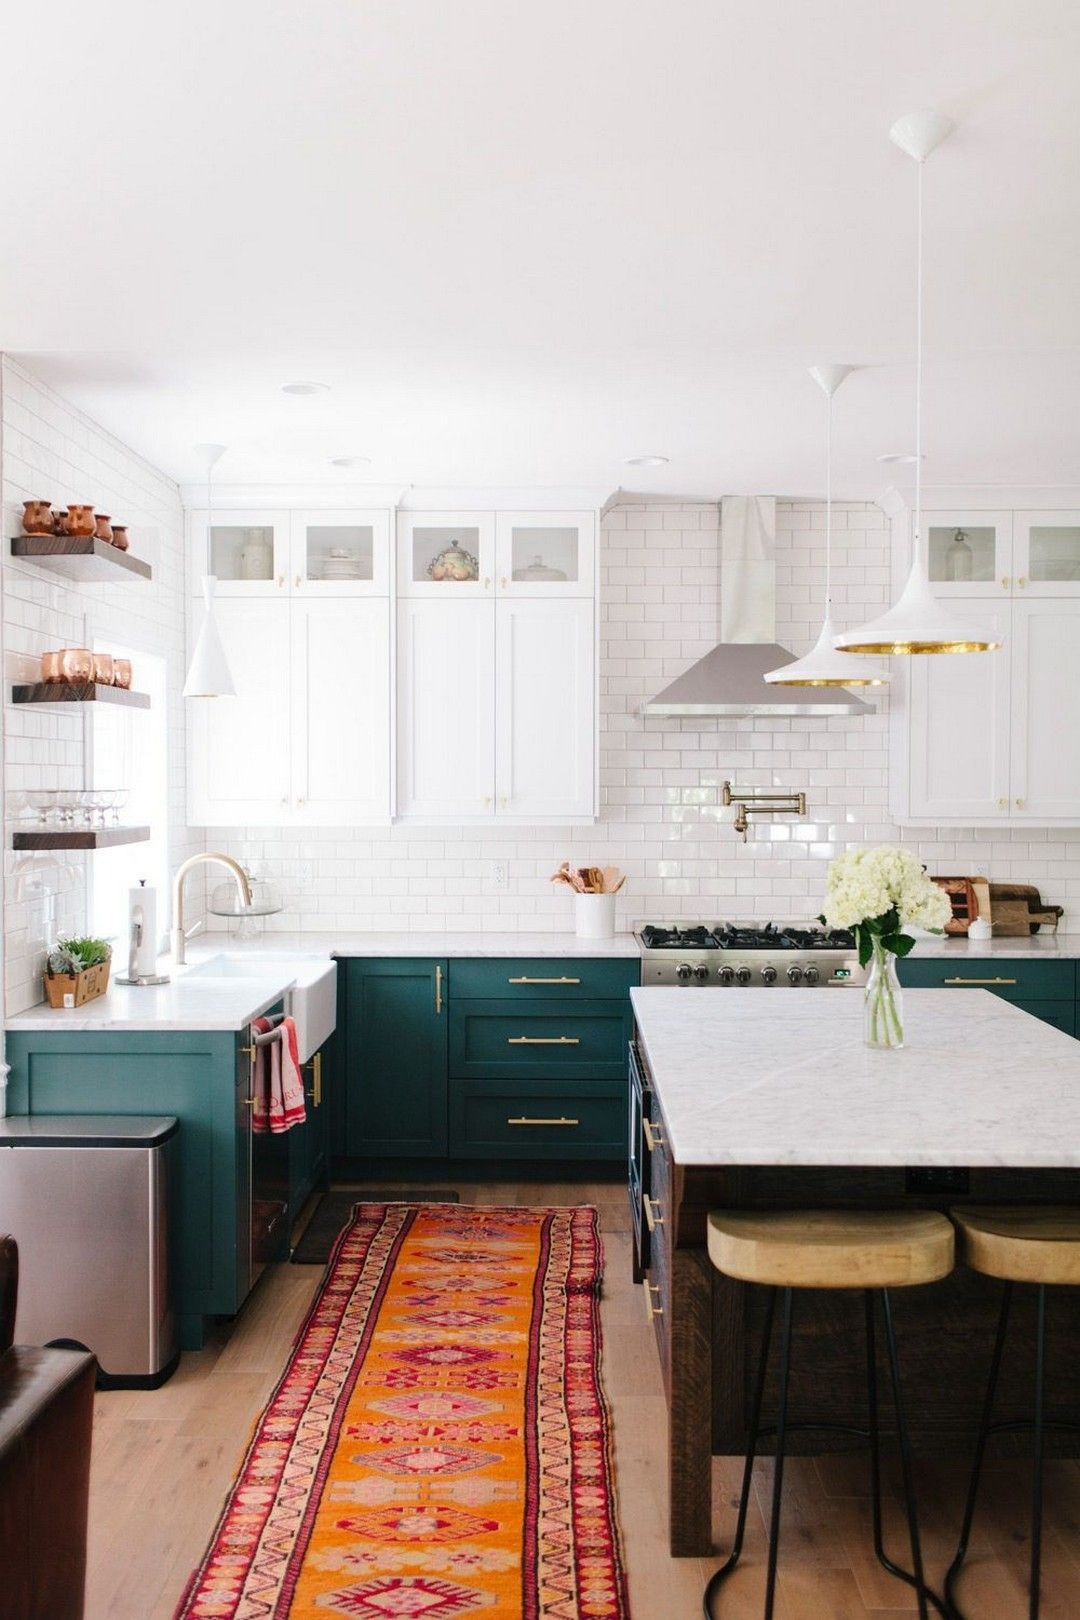 Beautiful Bohemian Kitchen Inspired Design | Cocinas